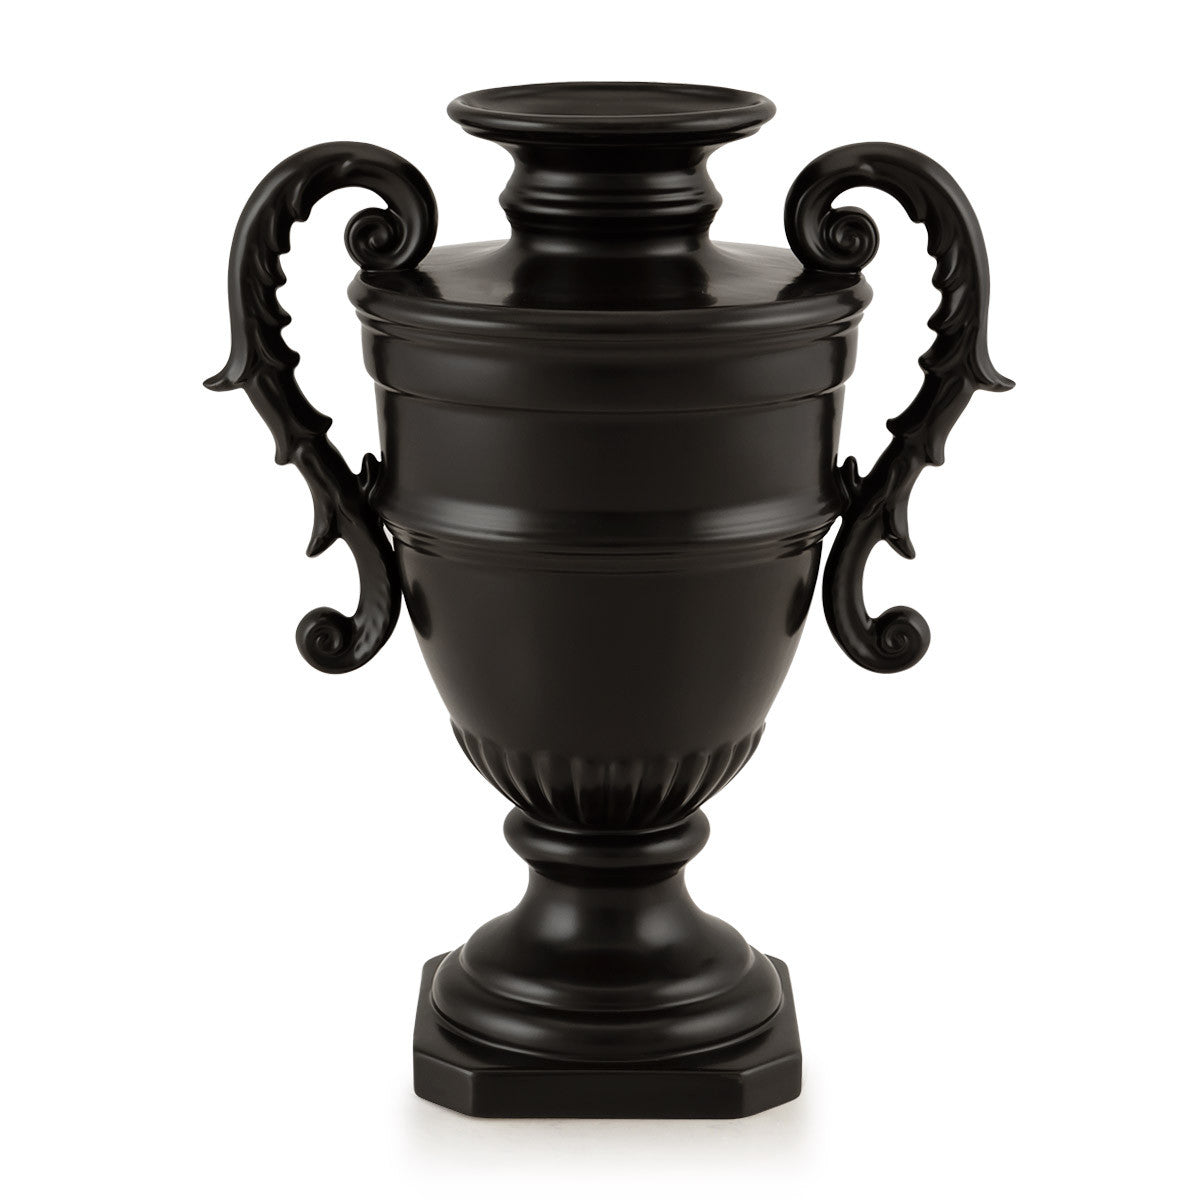 Black ceramic vase with two handles